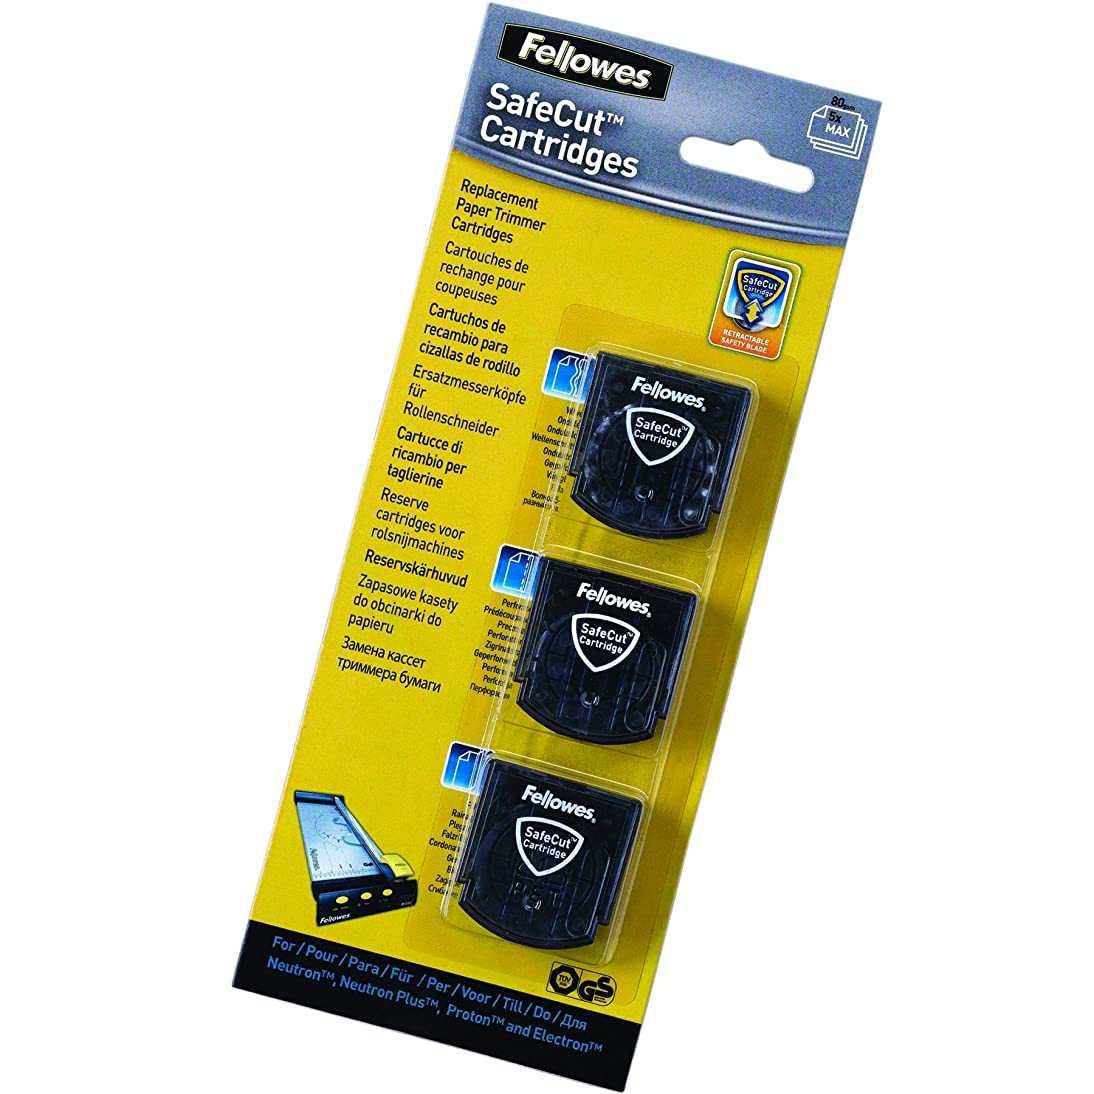 Fellowes SafeCut 5411301 Replacement Blade - Wave Style, Perforating Style, Score Style